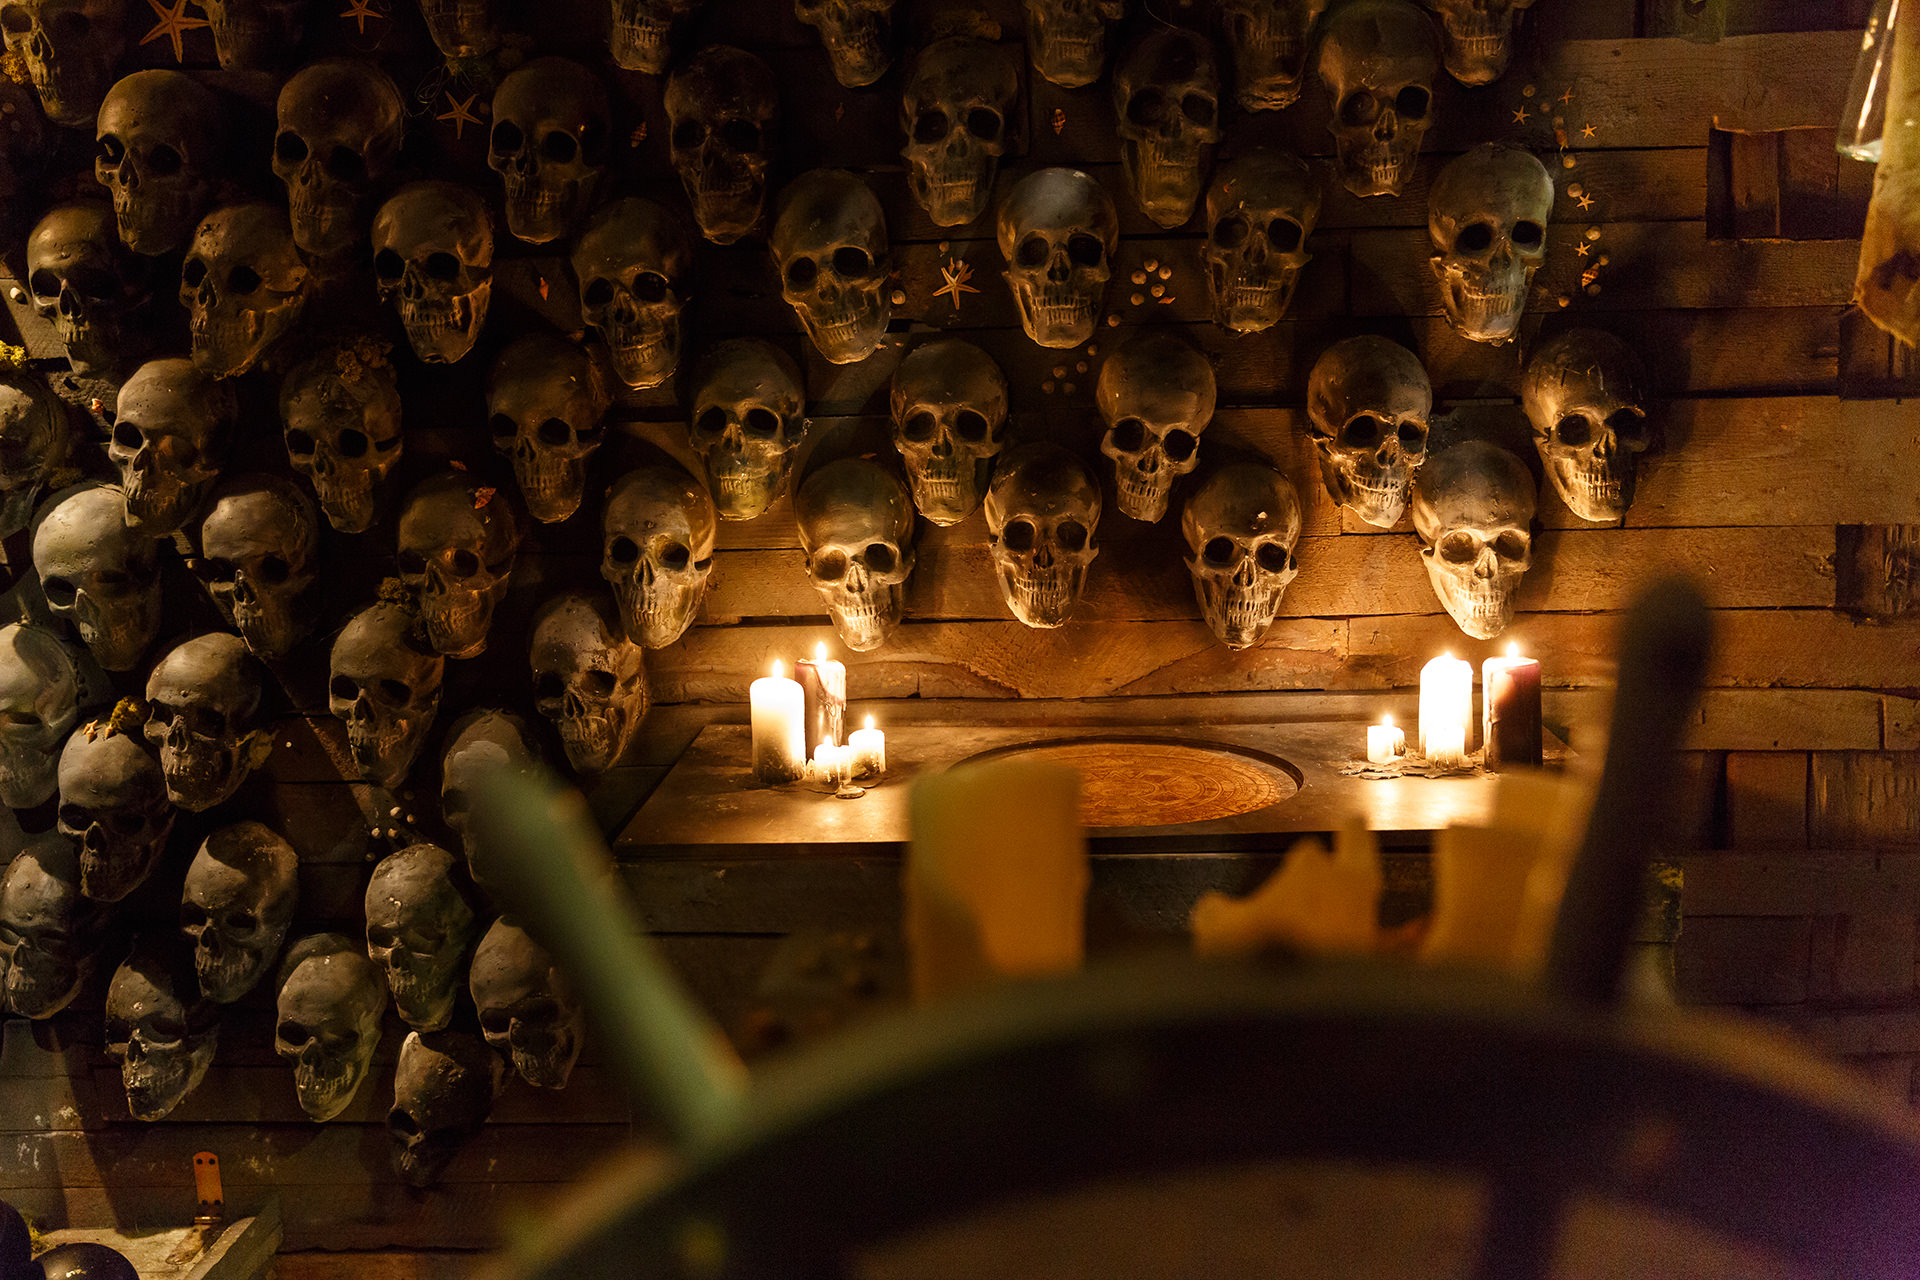 Escape room hell: 7 participants you do NOT want to be locked in with